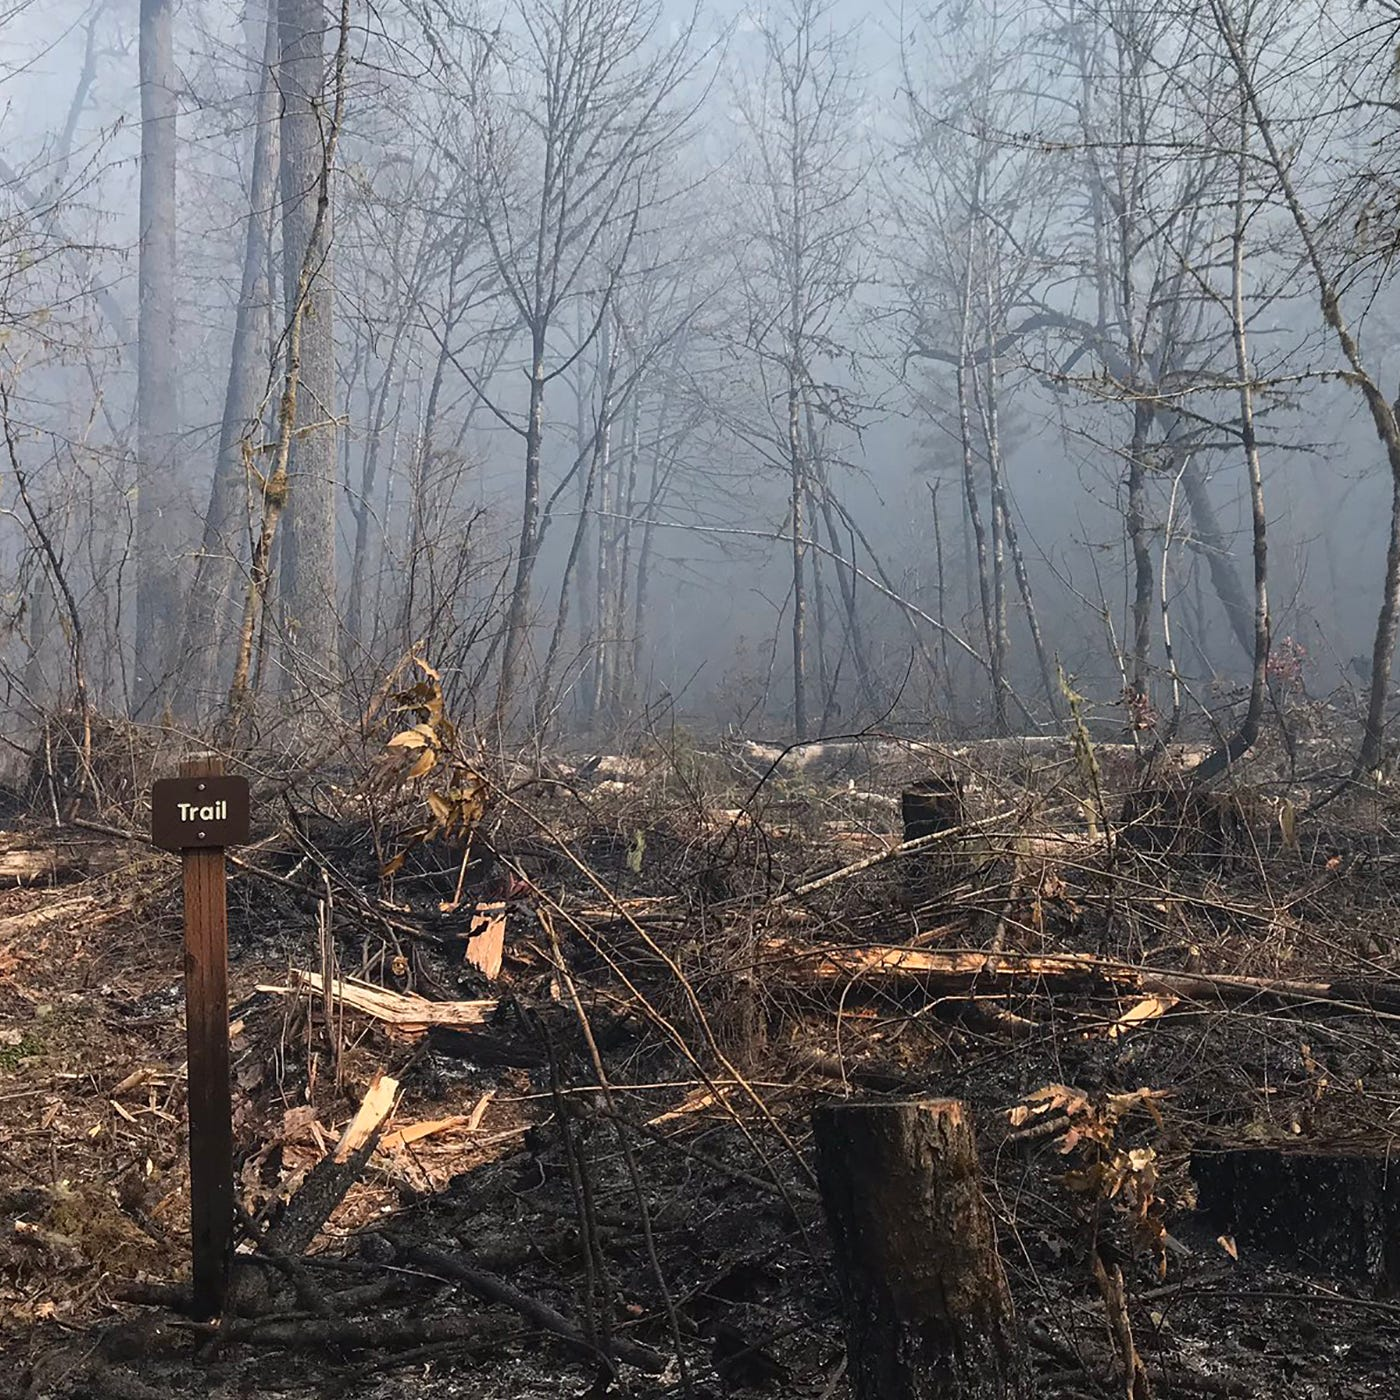 Santiam Park Fire: Burn ban issued in Marion, Clackamas, Linn counties